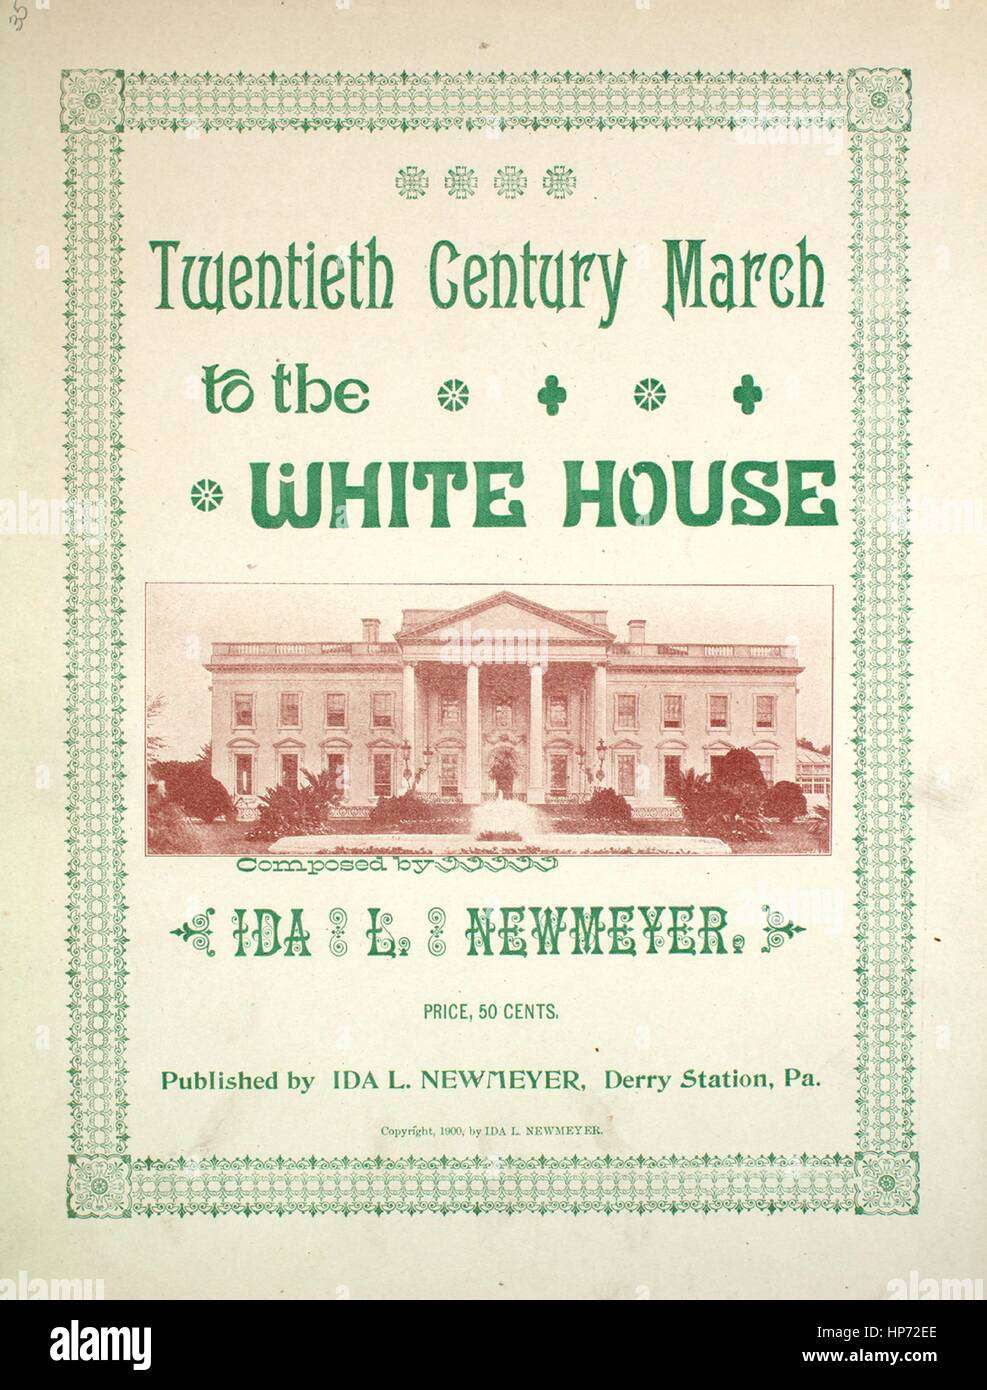 Sheet music cover image of the song 'Twentieth Century March to the White House', with original authorship - Stock Image